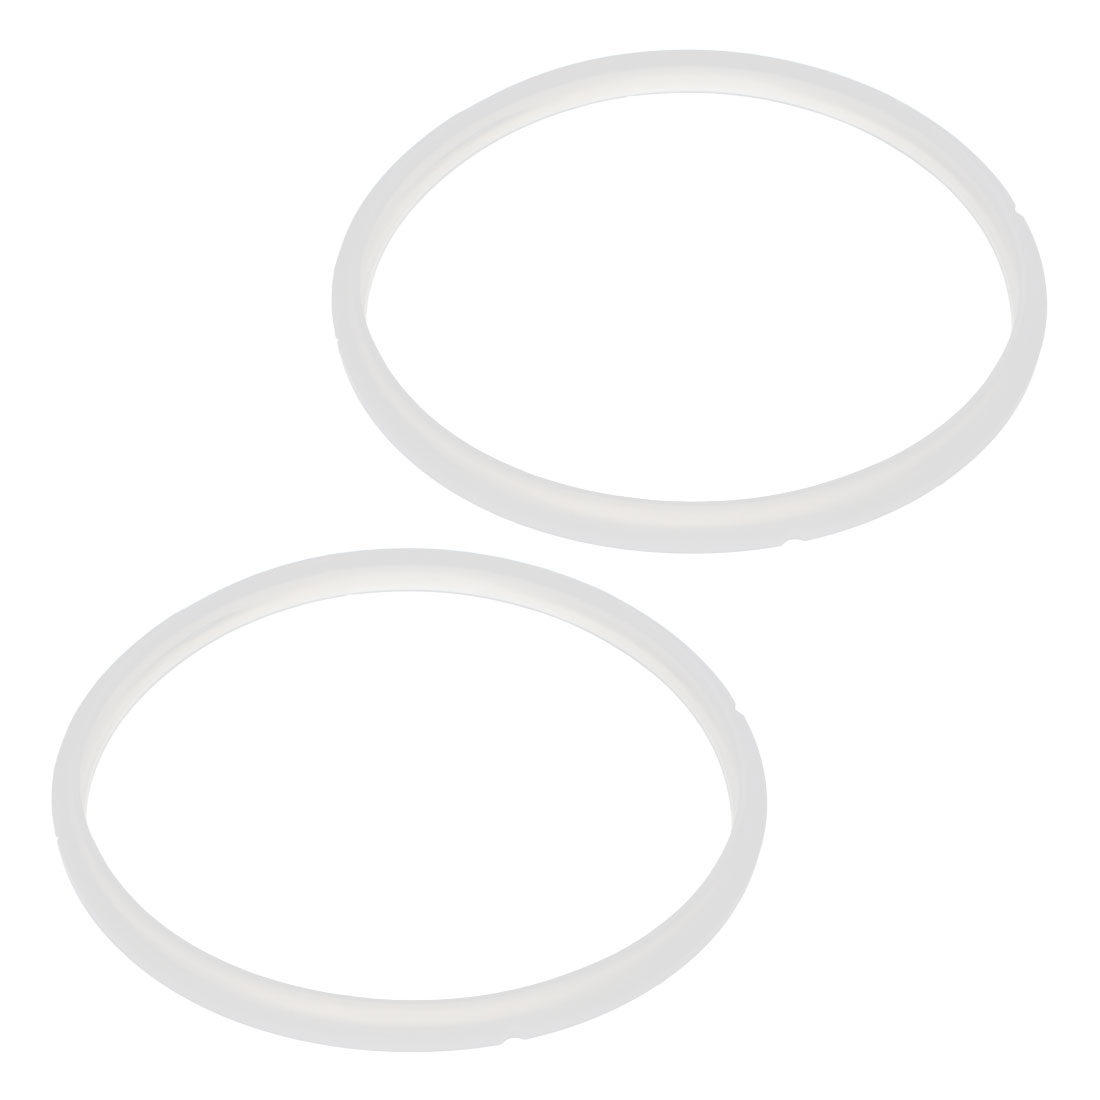 2PCS 21.5cm Inner Dia Gasket Sealing Ring for 5-6L Pressure Cookers